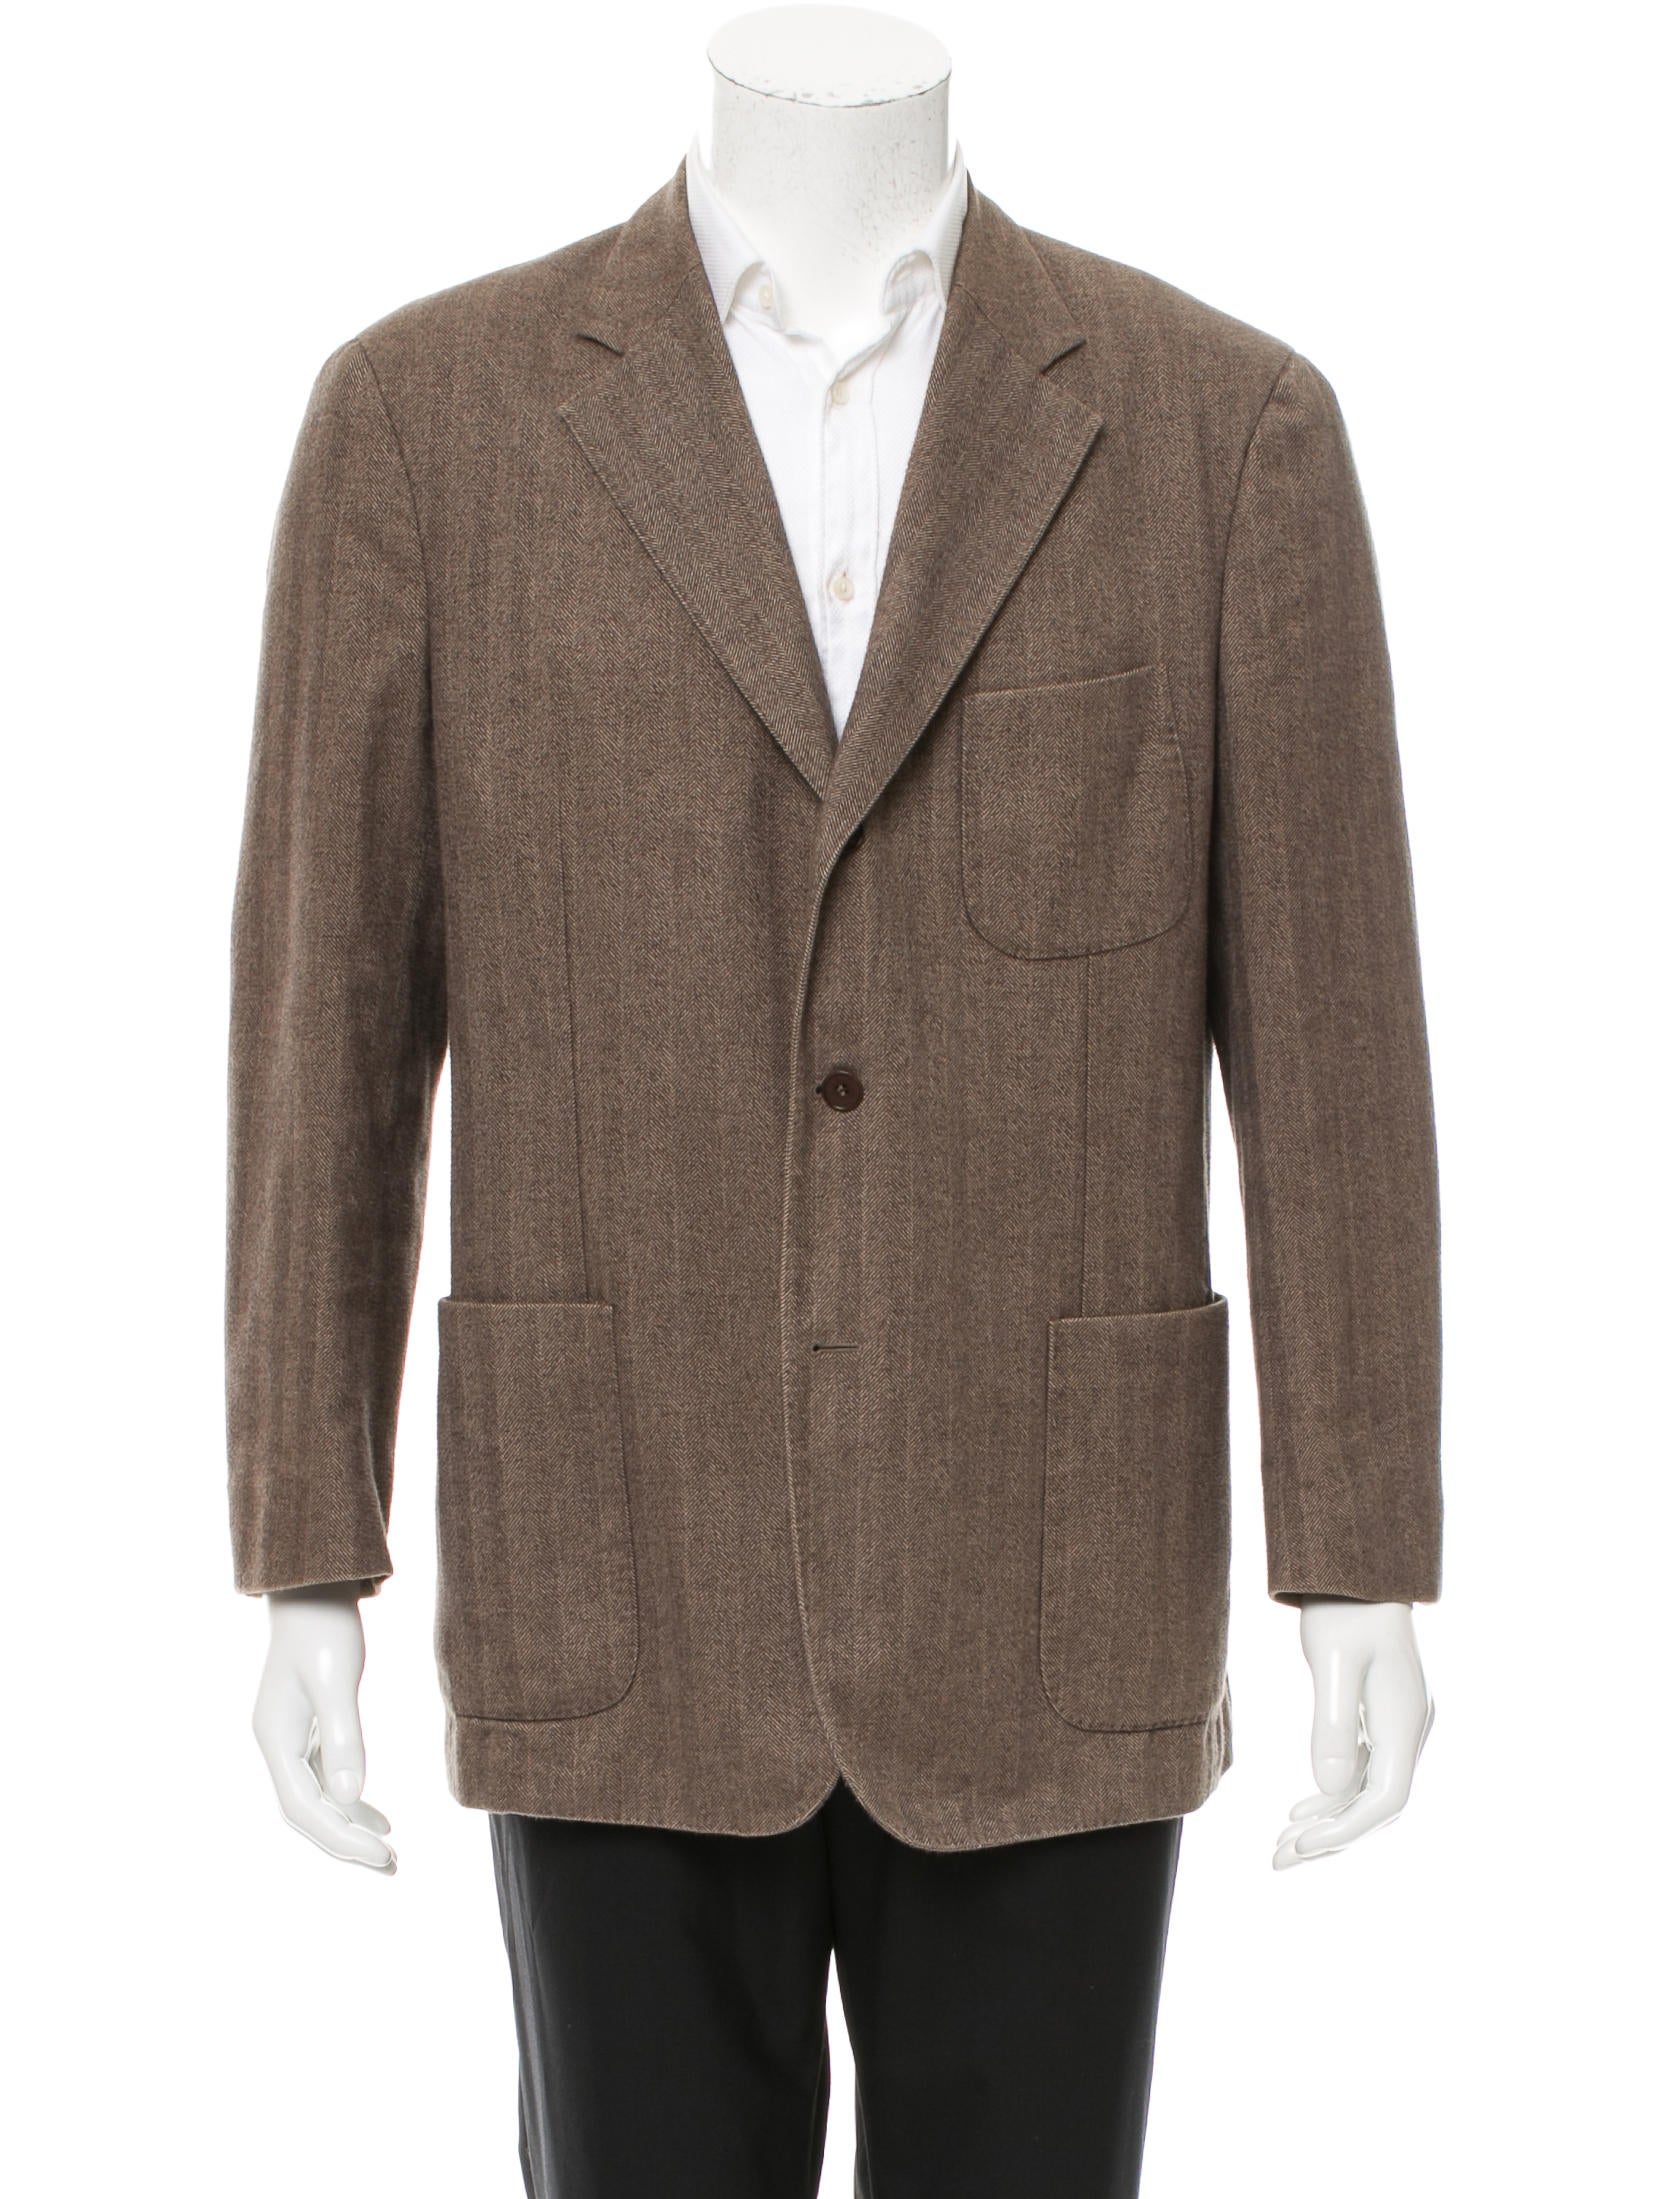 Overcheck Herringbone (Estate Tweed): This pattern consists of a herringbone weave overlaid with a check in various colors. Also known as estate tweeds. For most, suits or sport coats made out of a – gram tweed cloth will be much more suitable for a number of different activities such as hiking or strolling. As with anything.